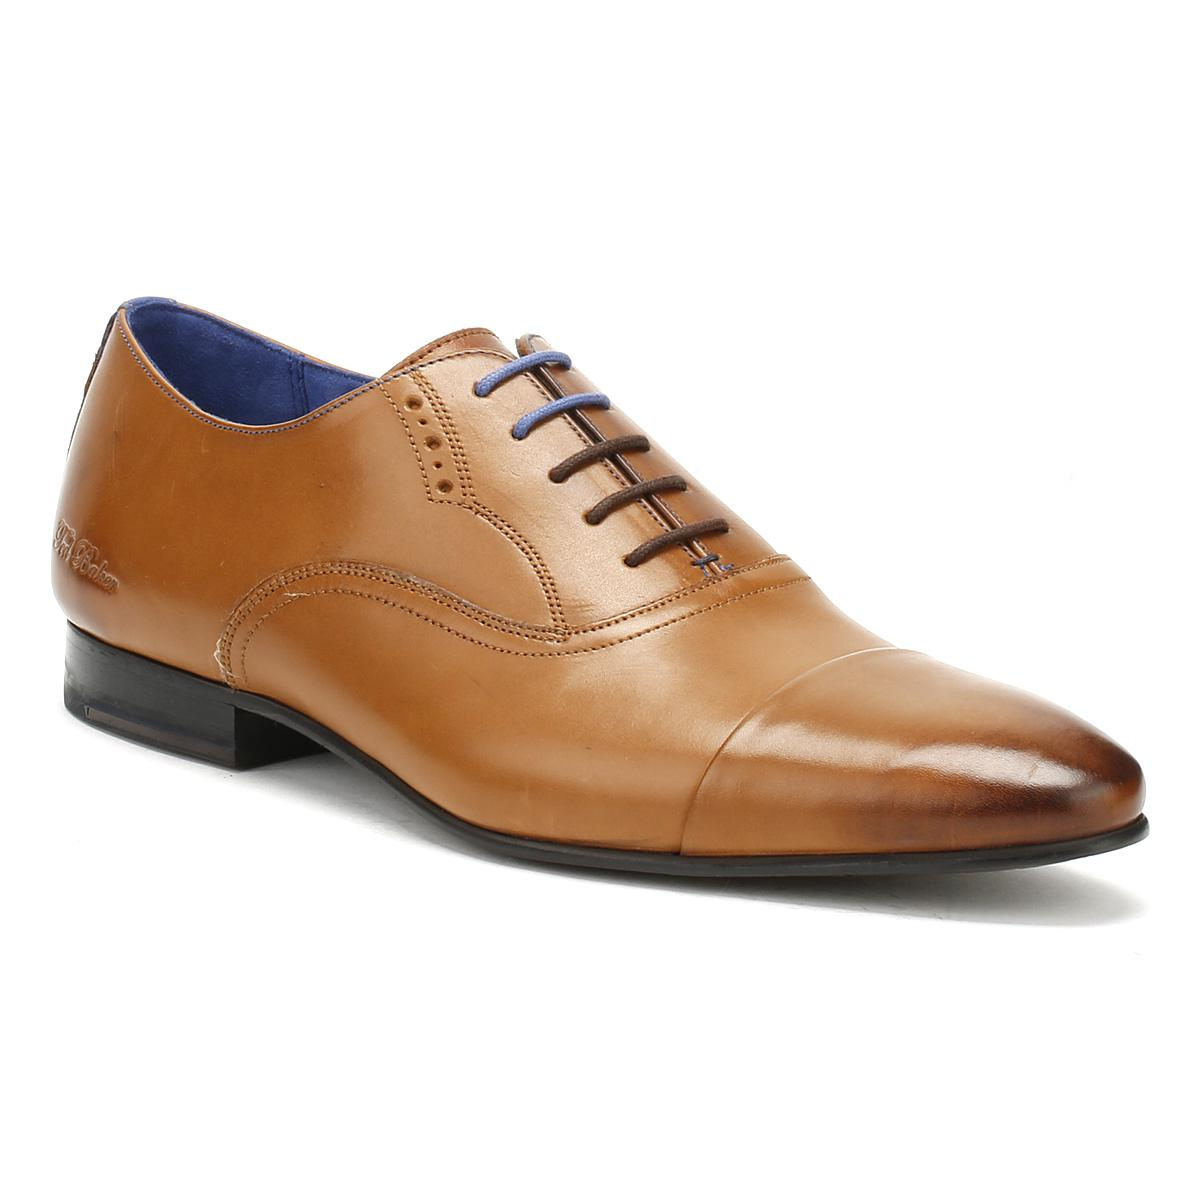 d0442d45627b1d Lyst - Ted Baker Mens Tan Leather Murain Shoes in Brown for Men ...